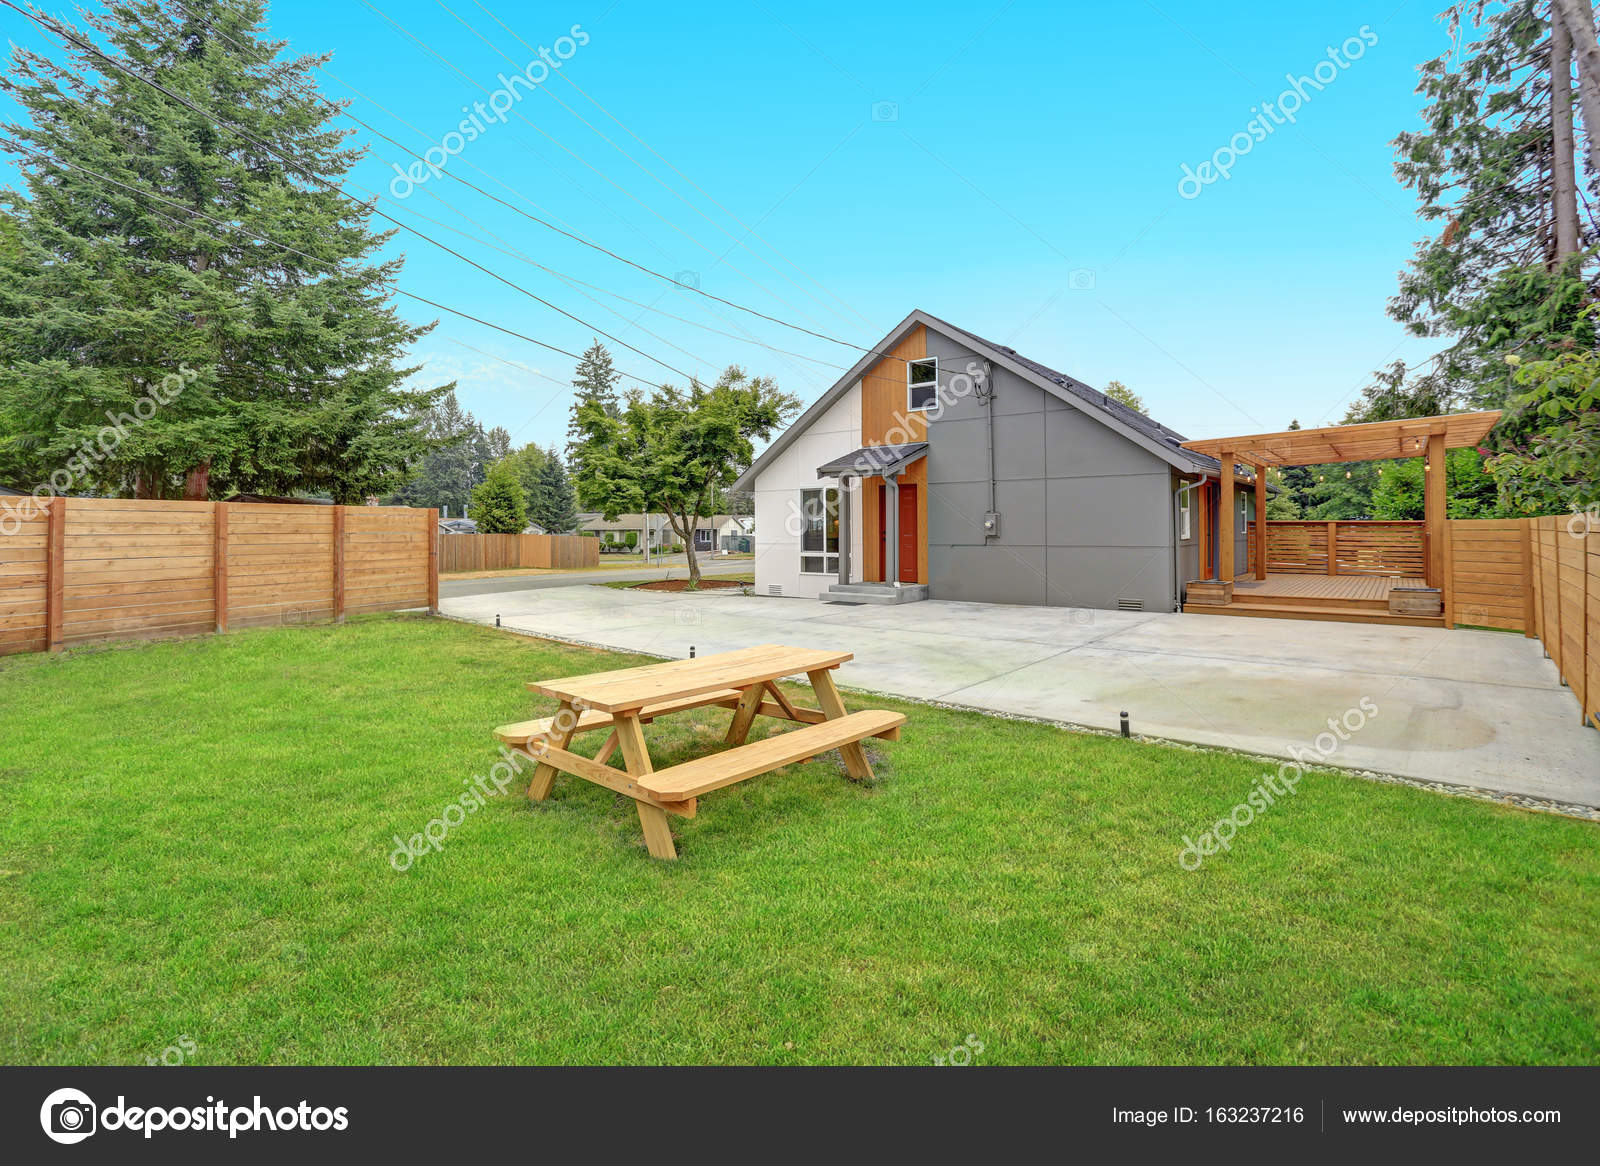 Completely renovated modern home in everett wa view of the back yard with spacious concrete patio area and large wrap deck photo by alabn